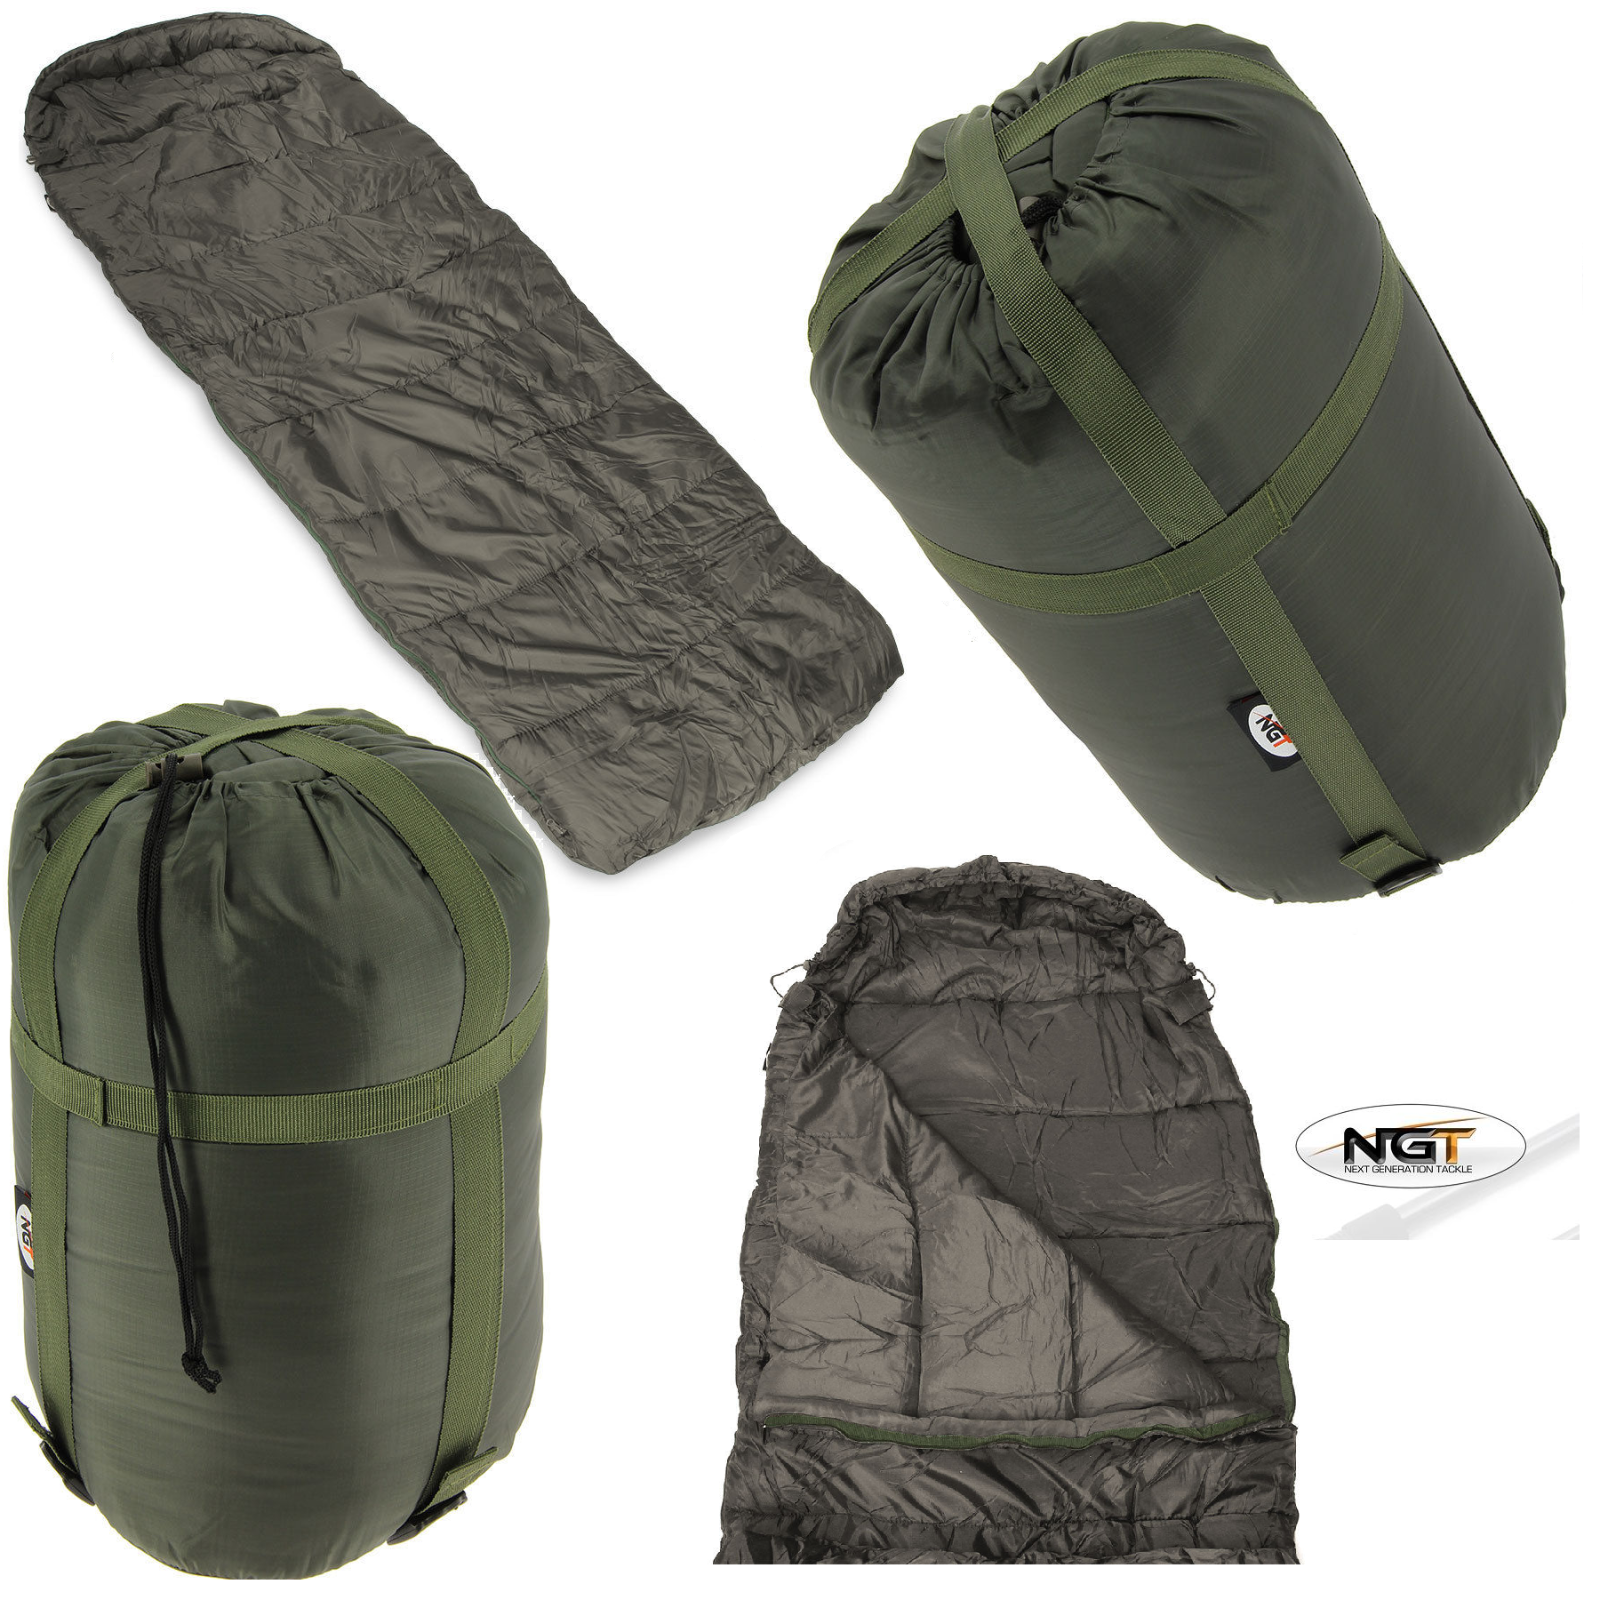 Ngt 3 4 Season Warm Sleeping Bag For Carp Fishing Beds Camping With Compression